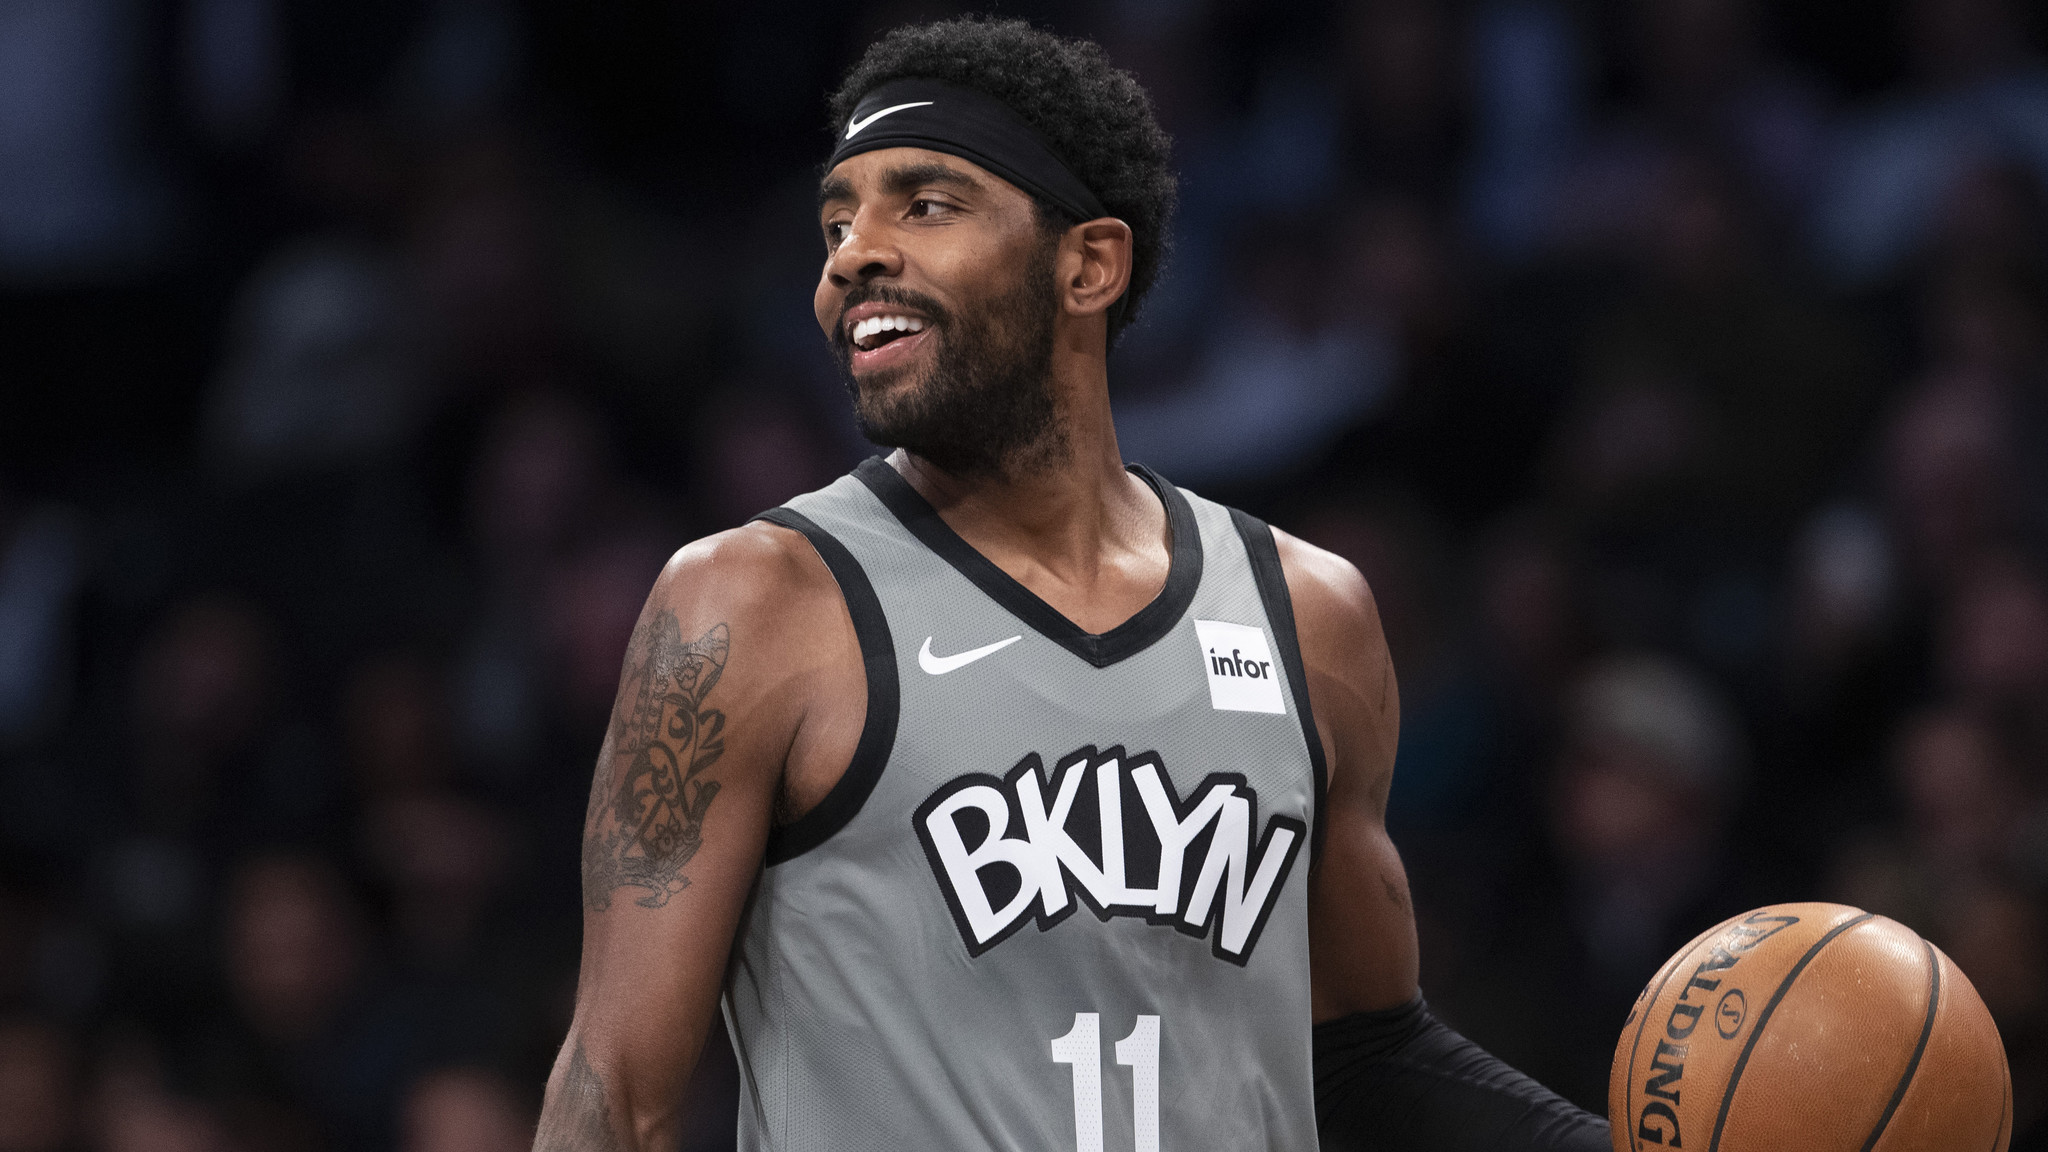 Kyrie Irving practices in full with Nets and now hopes to be cleared for return to action soon